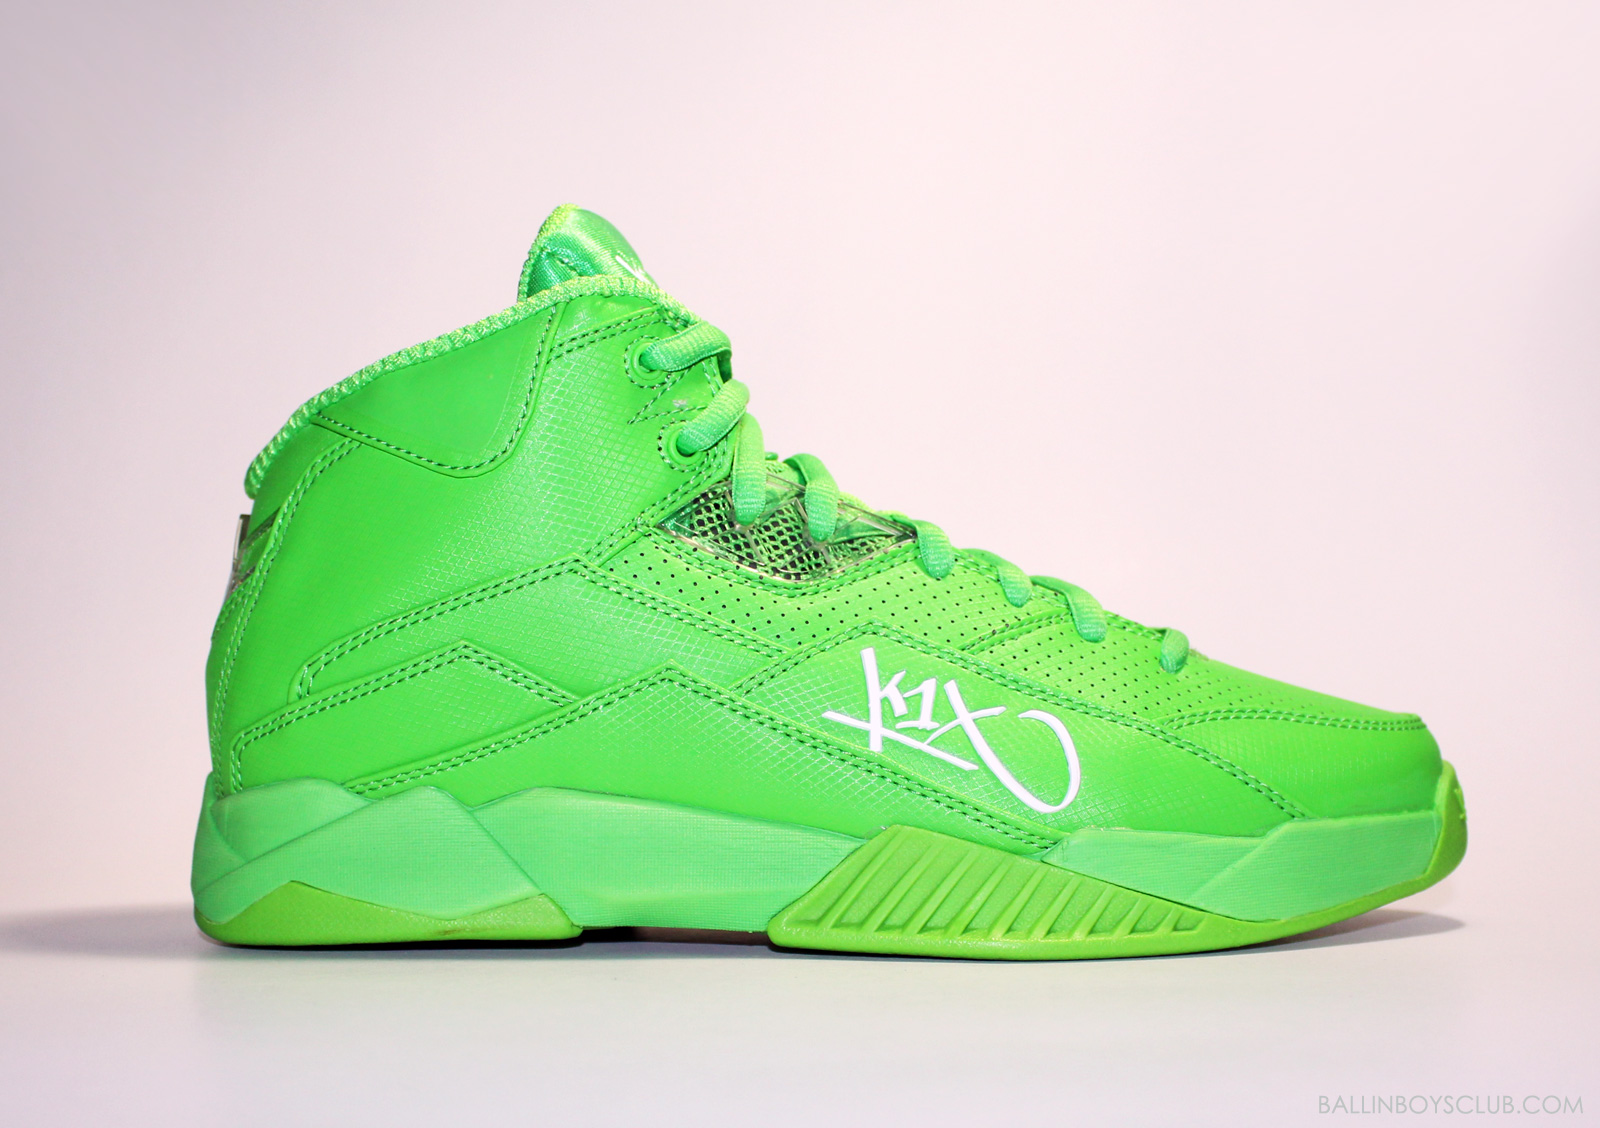 K1X Anti-Gravity GREEN